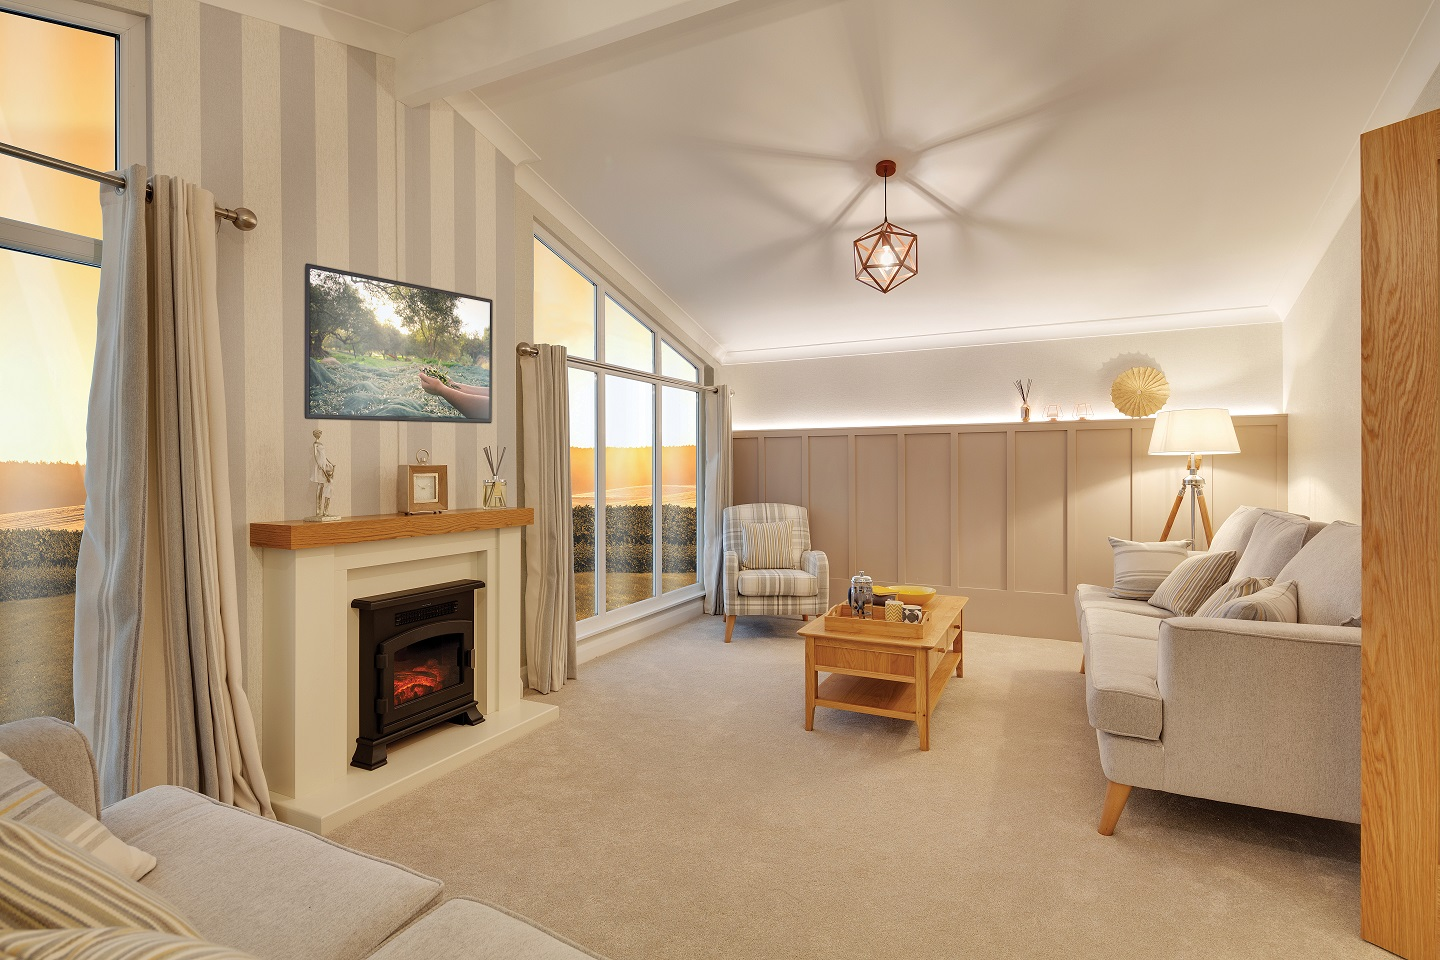 Willerby Delamere: New Holiday Lodges and Park Homes for Sale, Durham, Durham and Weardale Large Image 1